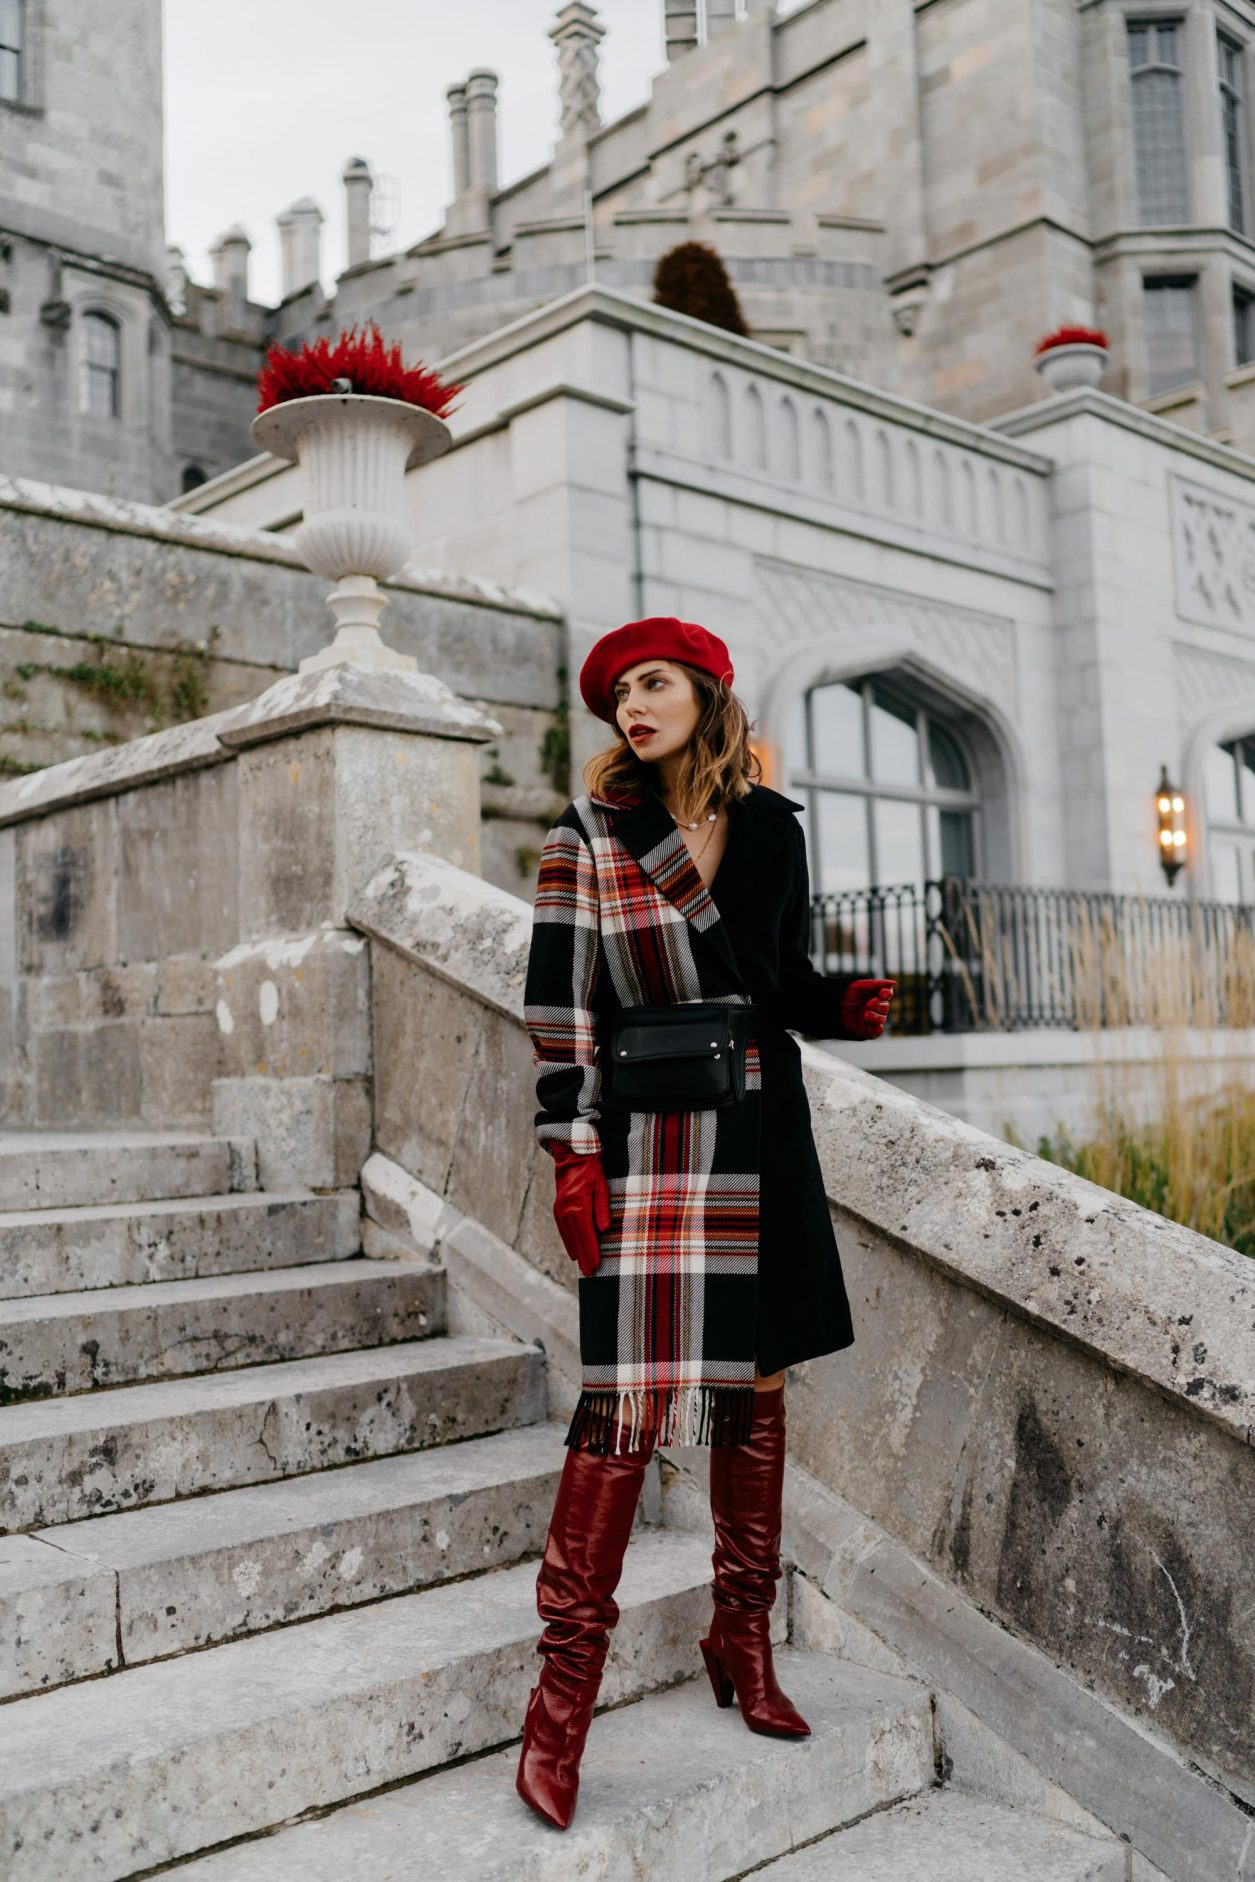 Streetstyle by Masha Sedgwick | Fashion and beauty blogger from Berlin, Germany | Everyday fashion, fall winter 2019 outfit ideas, fashion inspiration, styling tip: checked red with blue, minimalistic chic Parisienne, effortless cool, top autumn outfit | Travel outfit, Scandinavian architecture, Ader Manor Hotel